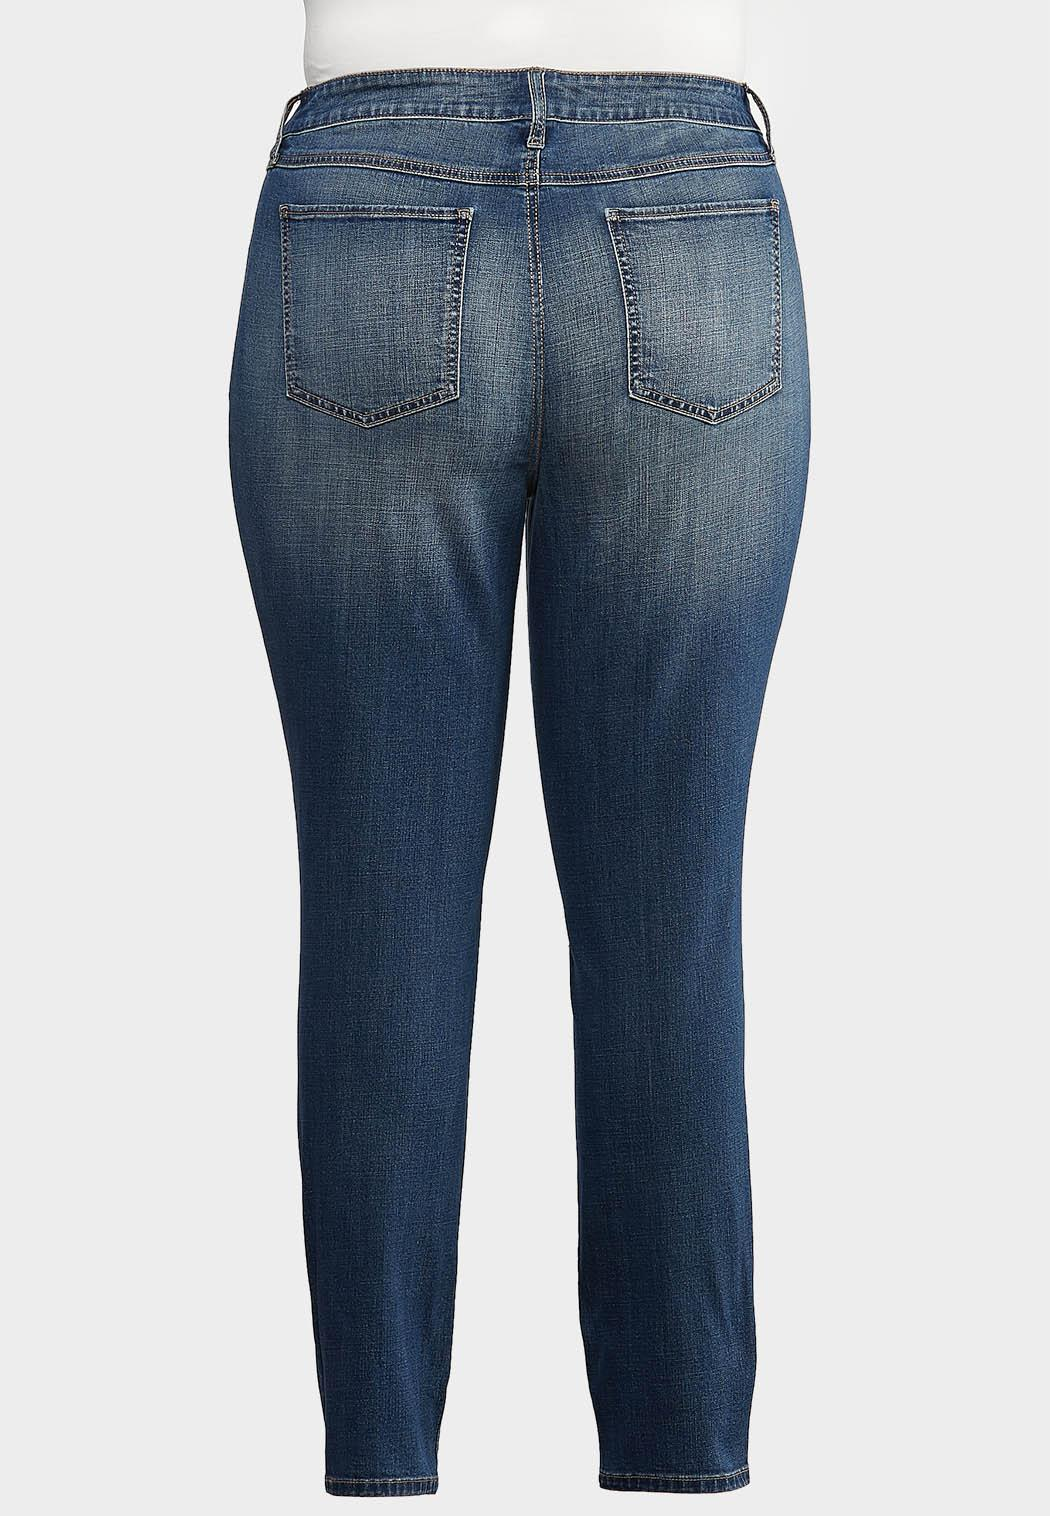 Plus Size Curvy Washed Skinny Jeans (Item #43992332)